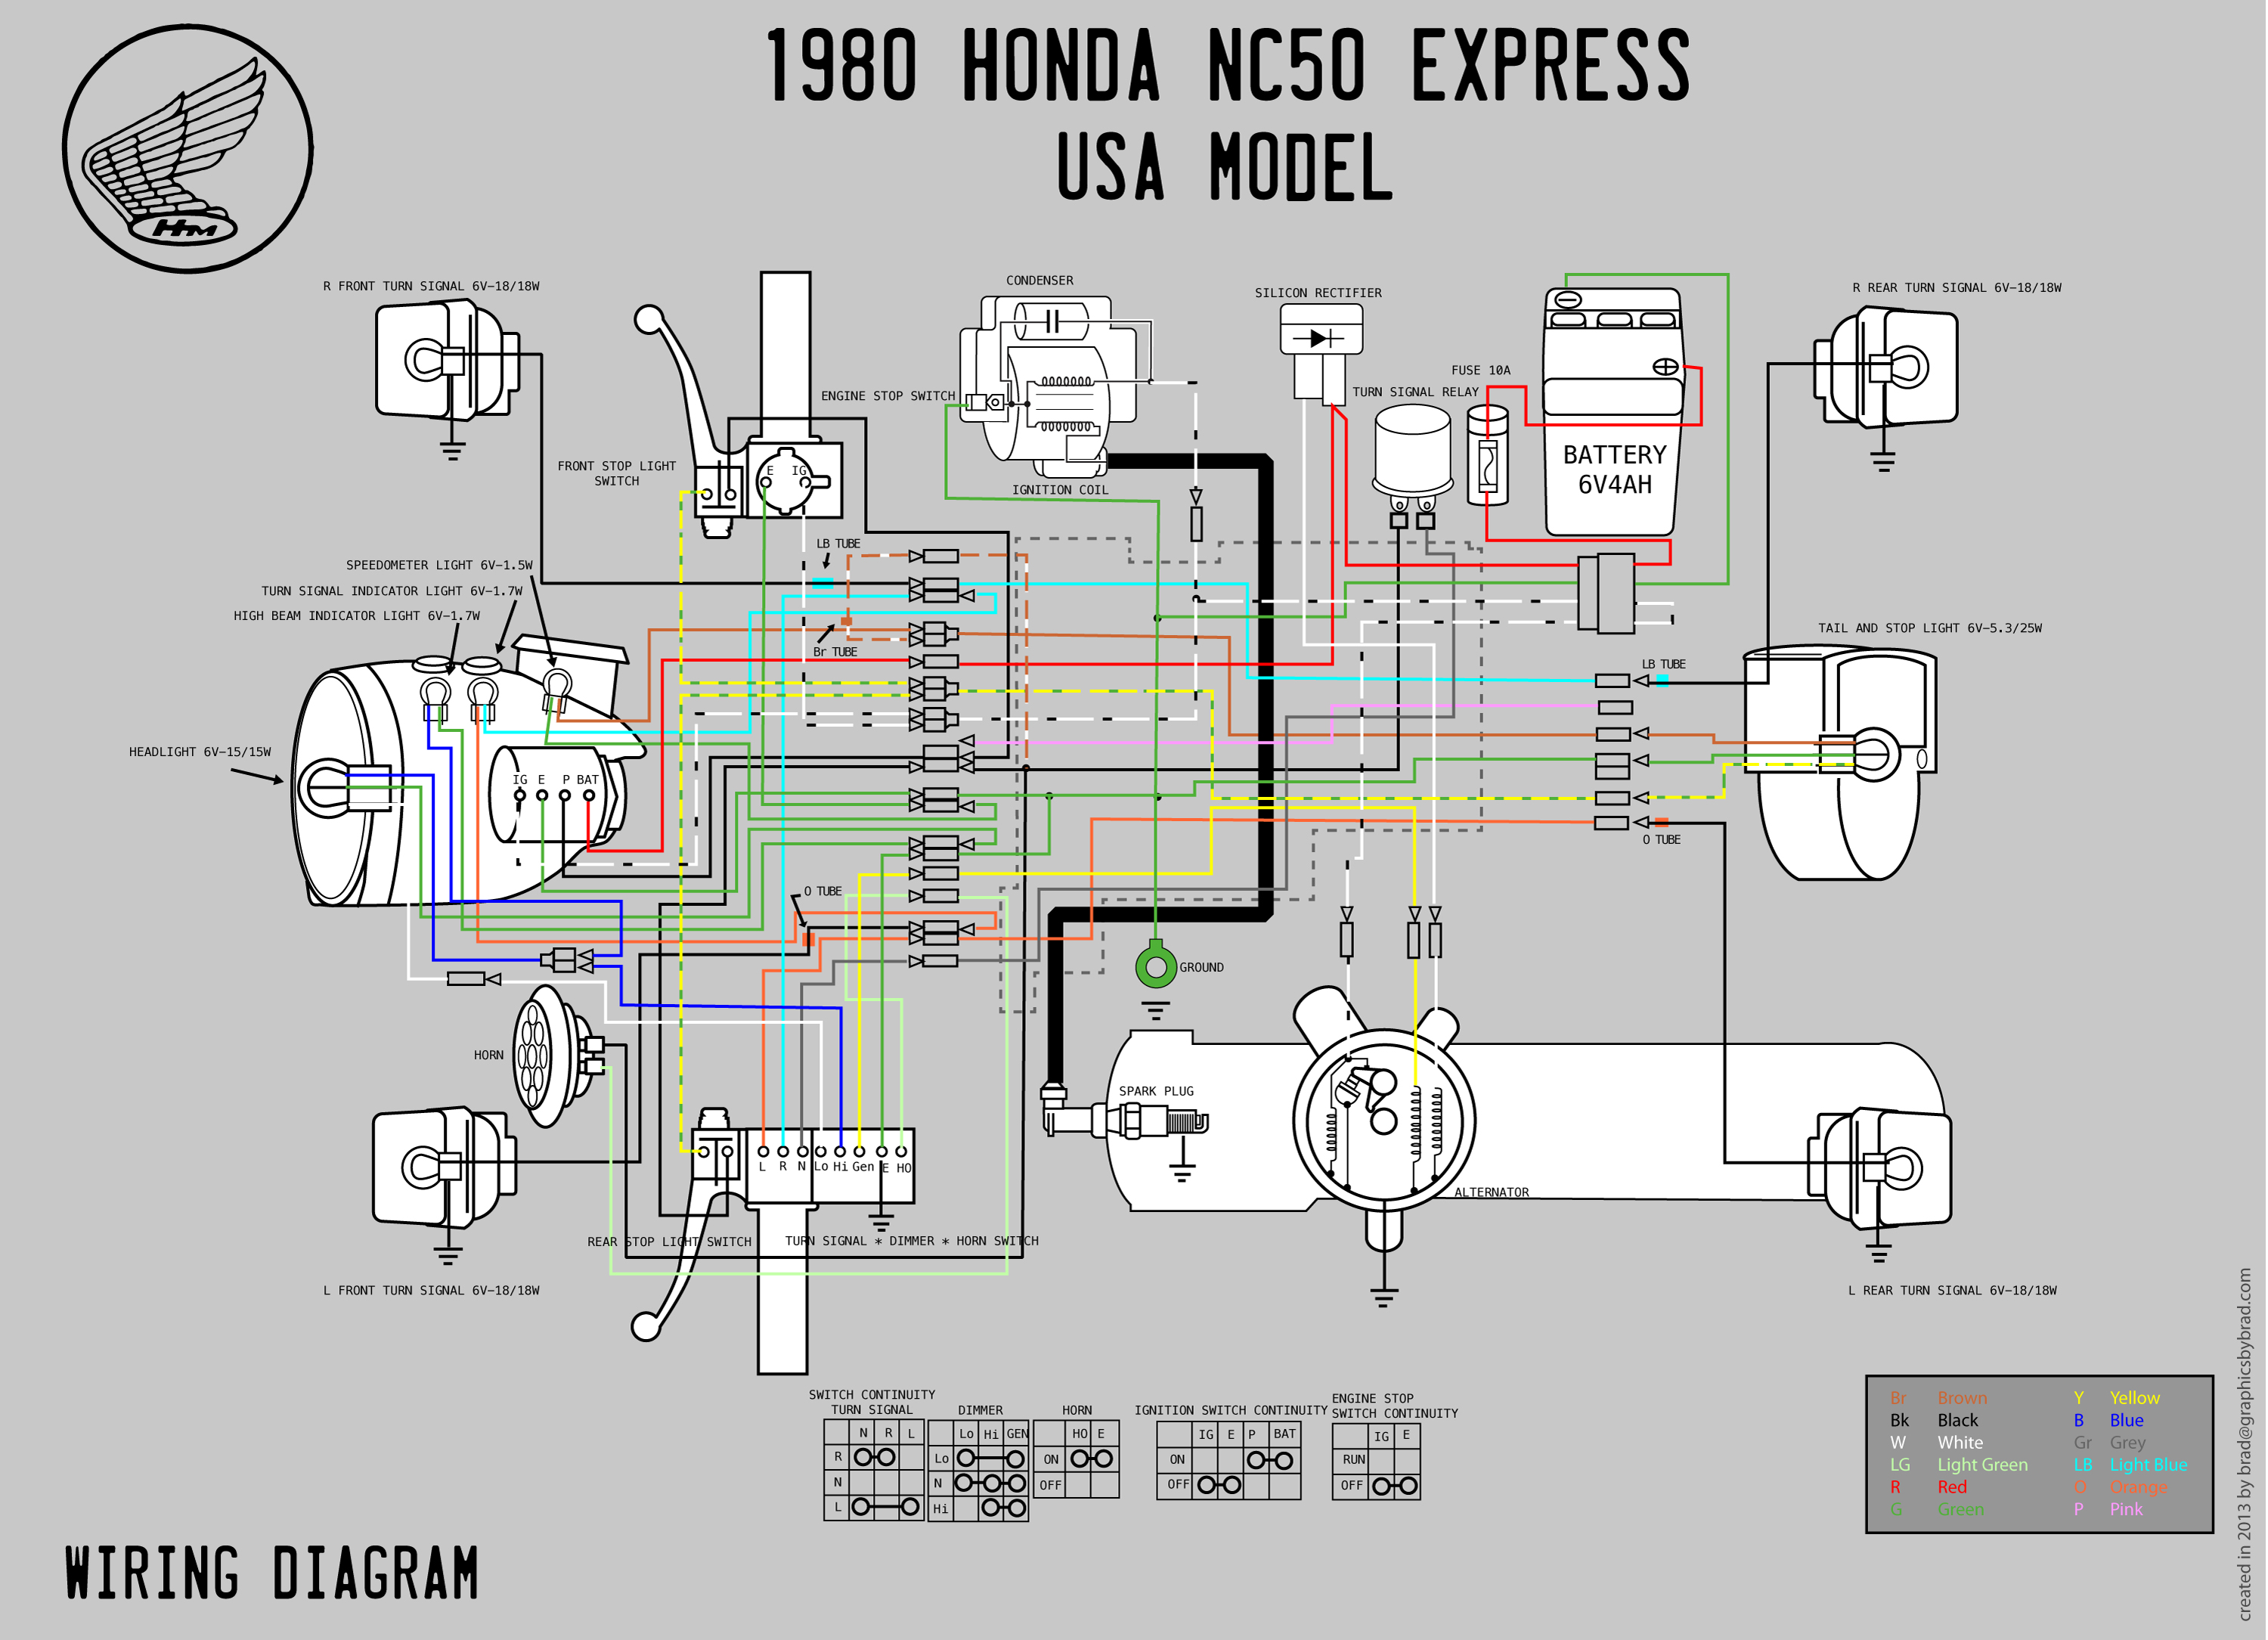 1980 nc50 wiring lrg 1980 honda express wiring diagram 1980 wiring diagrams collection tg1 express wiring diagram at crackthecode.co